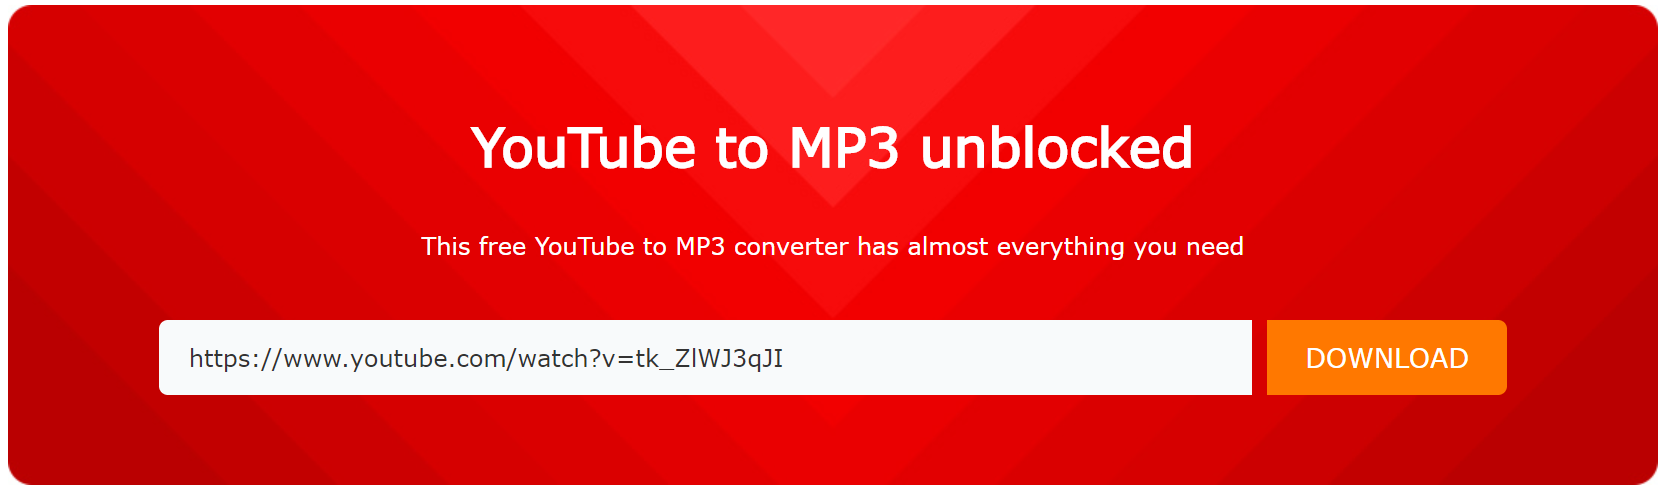 youtube-to-mp3